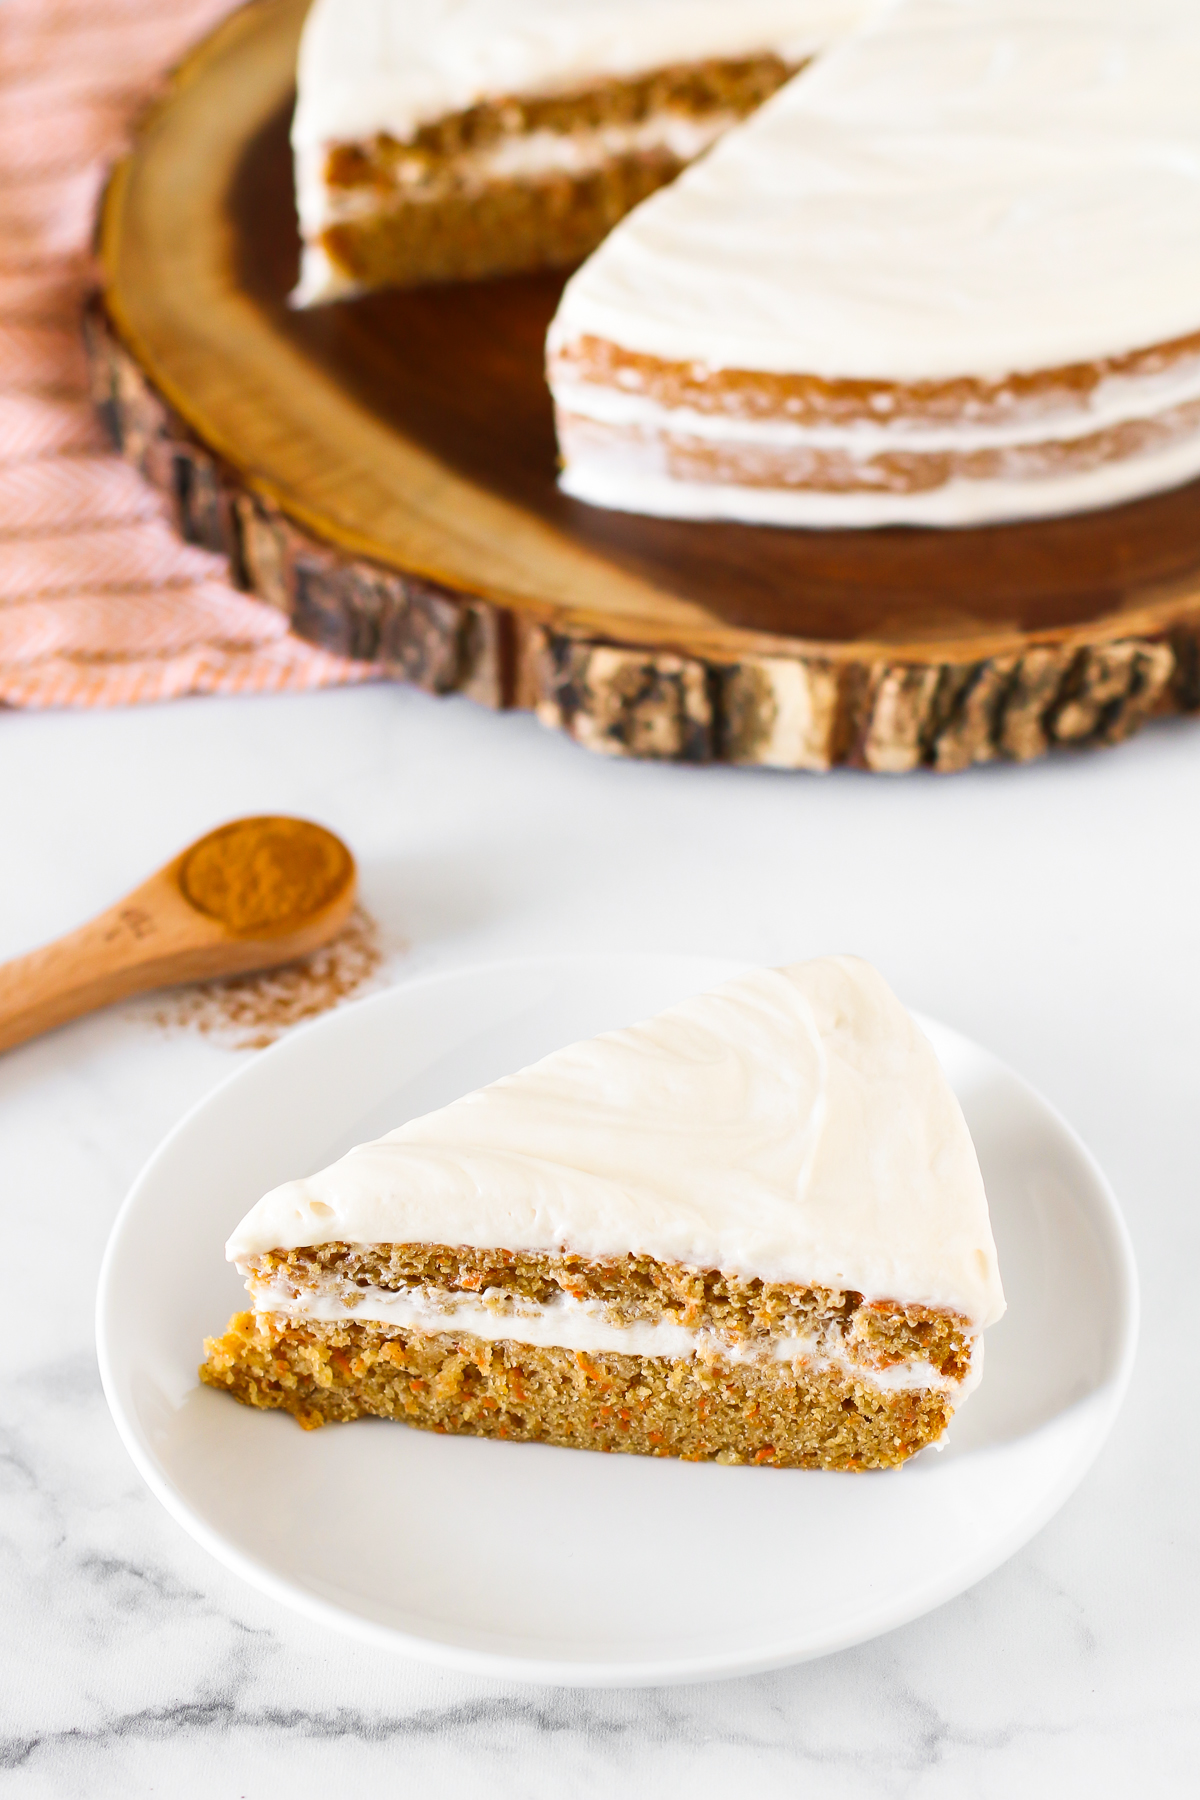 Gluten Free Vegan Carrot Cake. Layers of moist, spiced carrot cake and decadent cream cheese frosting.